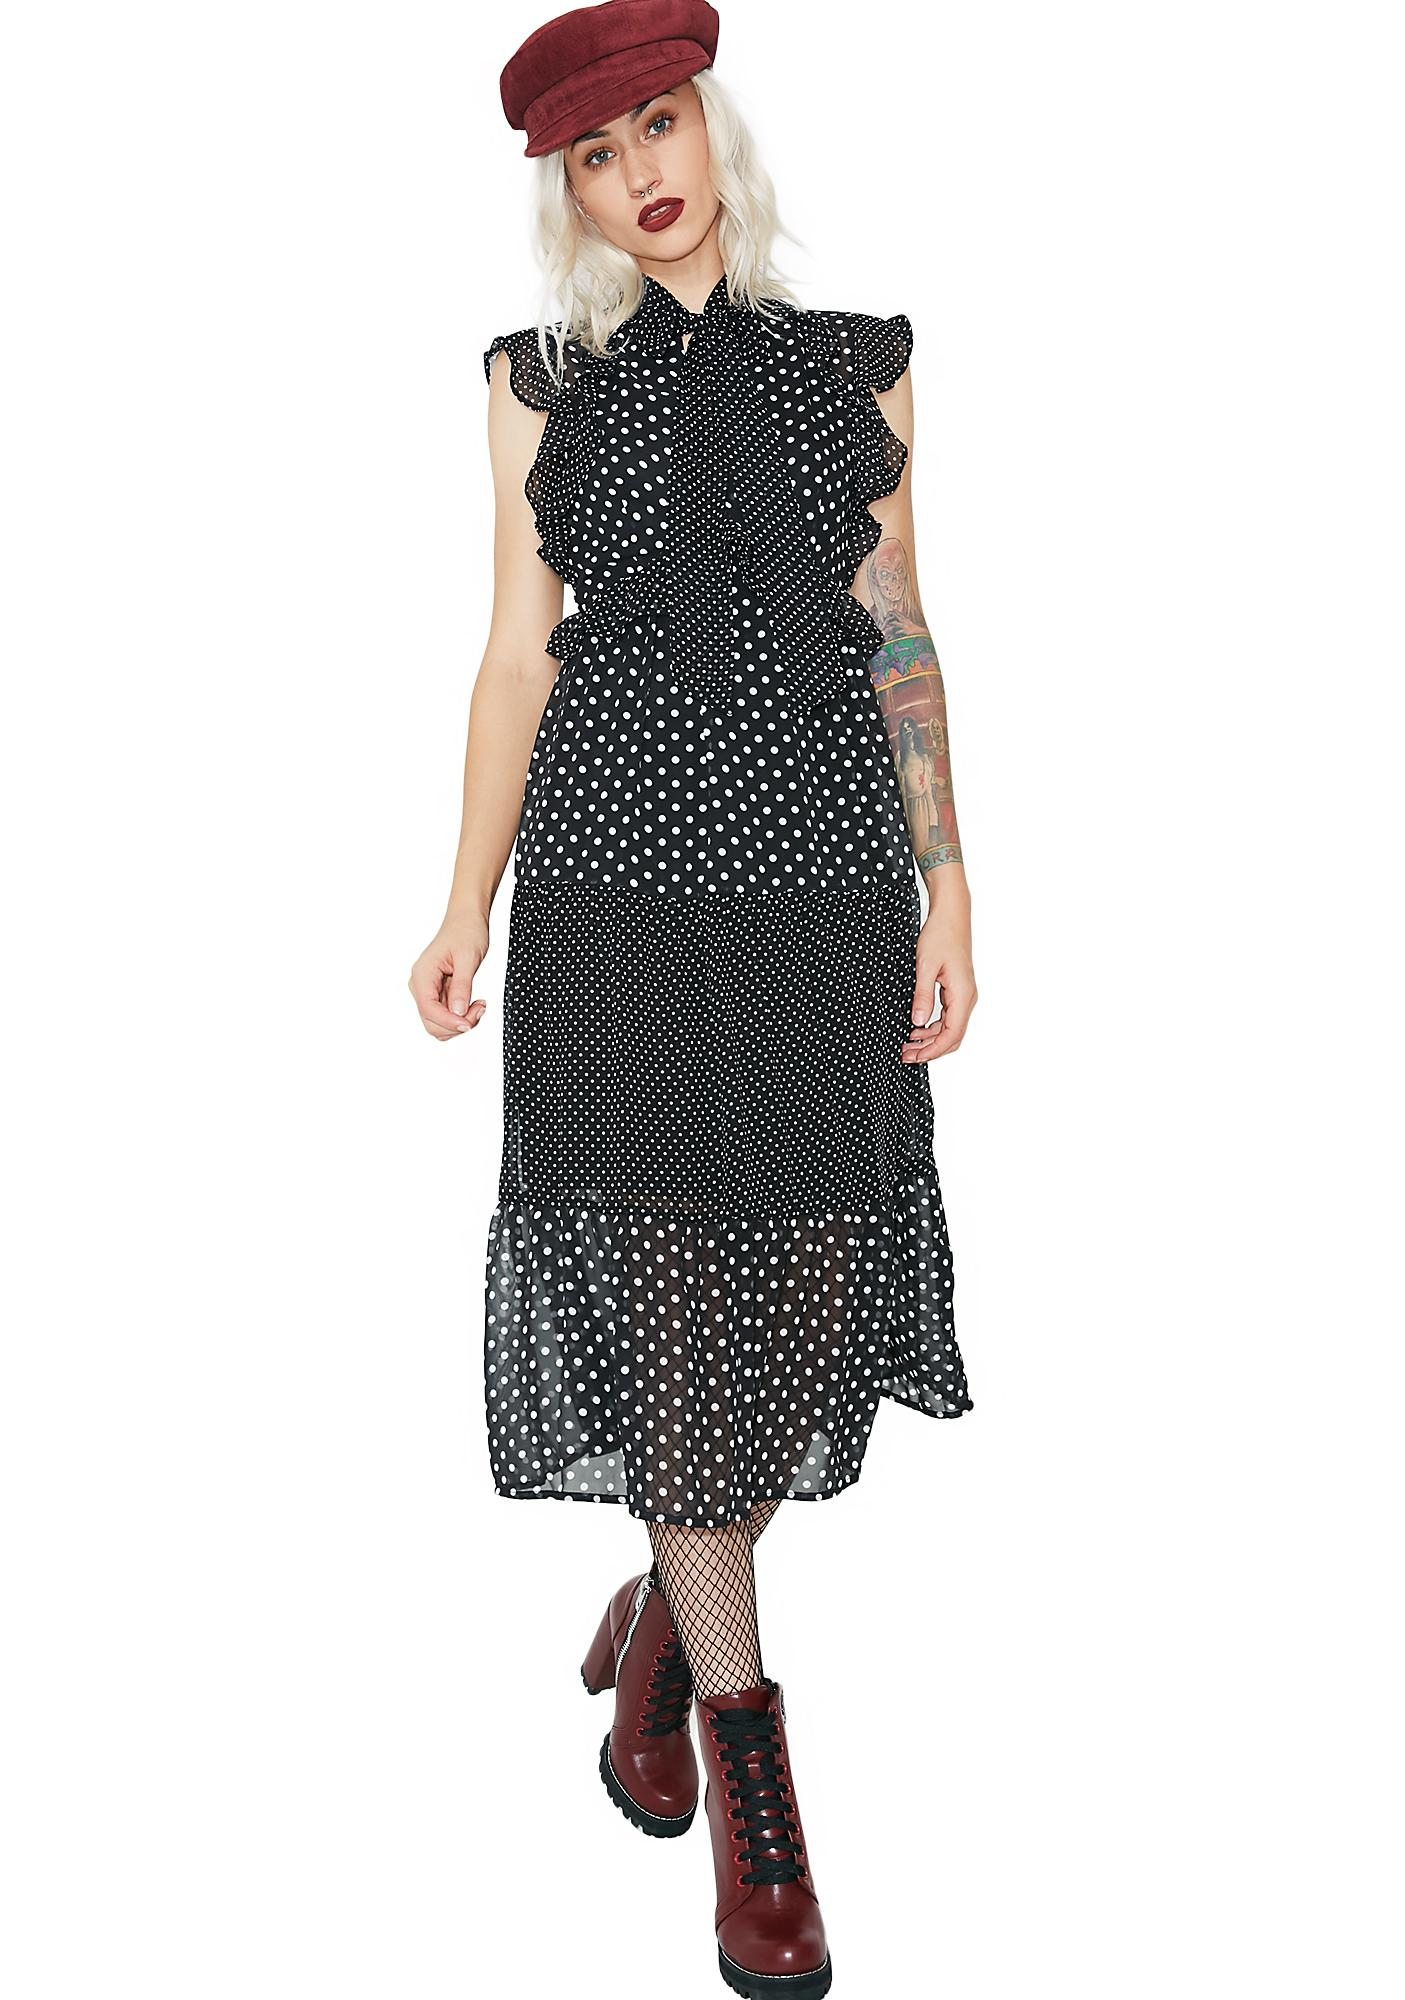 Gettin' Good Polka Dot Dress